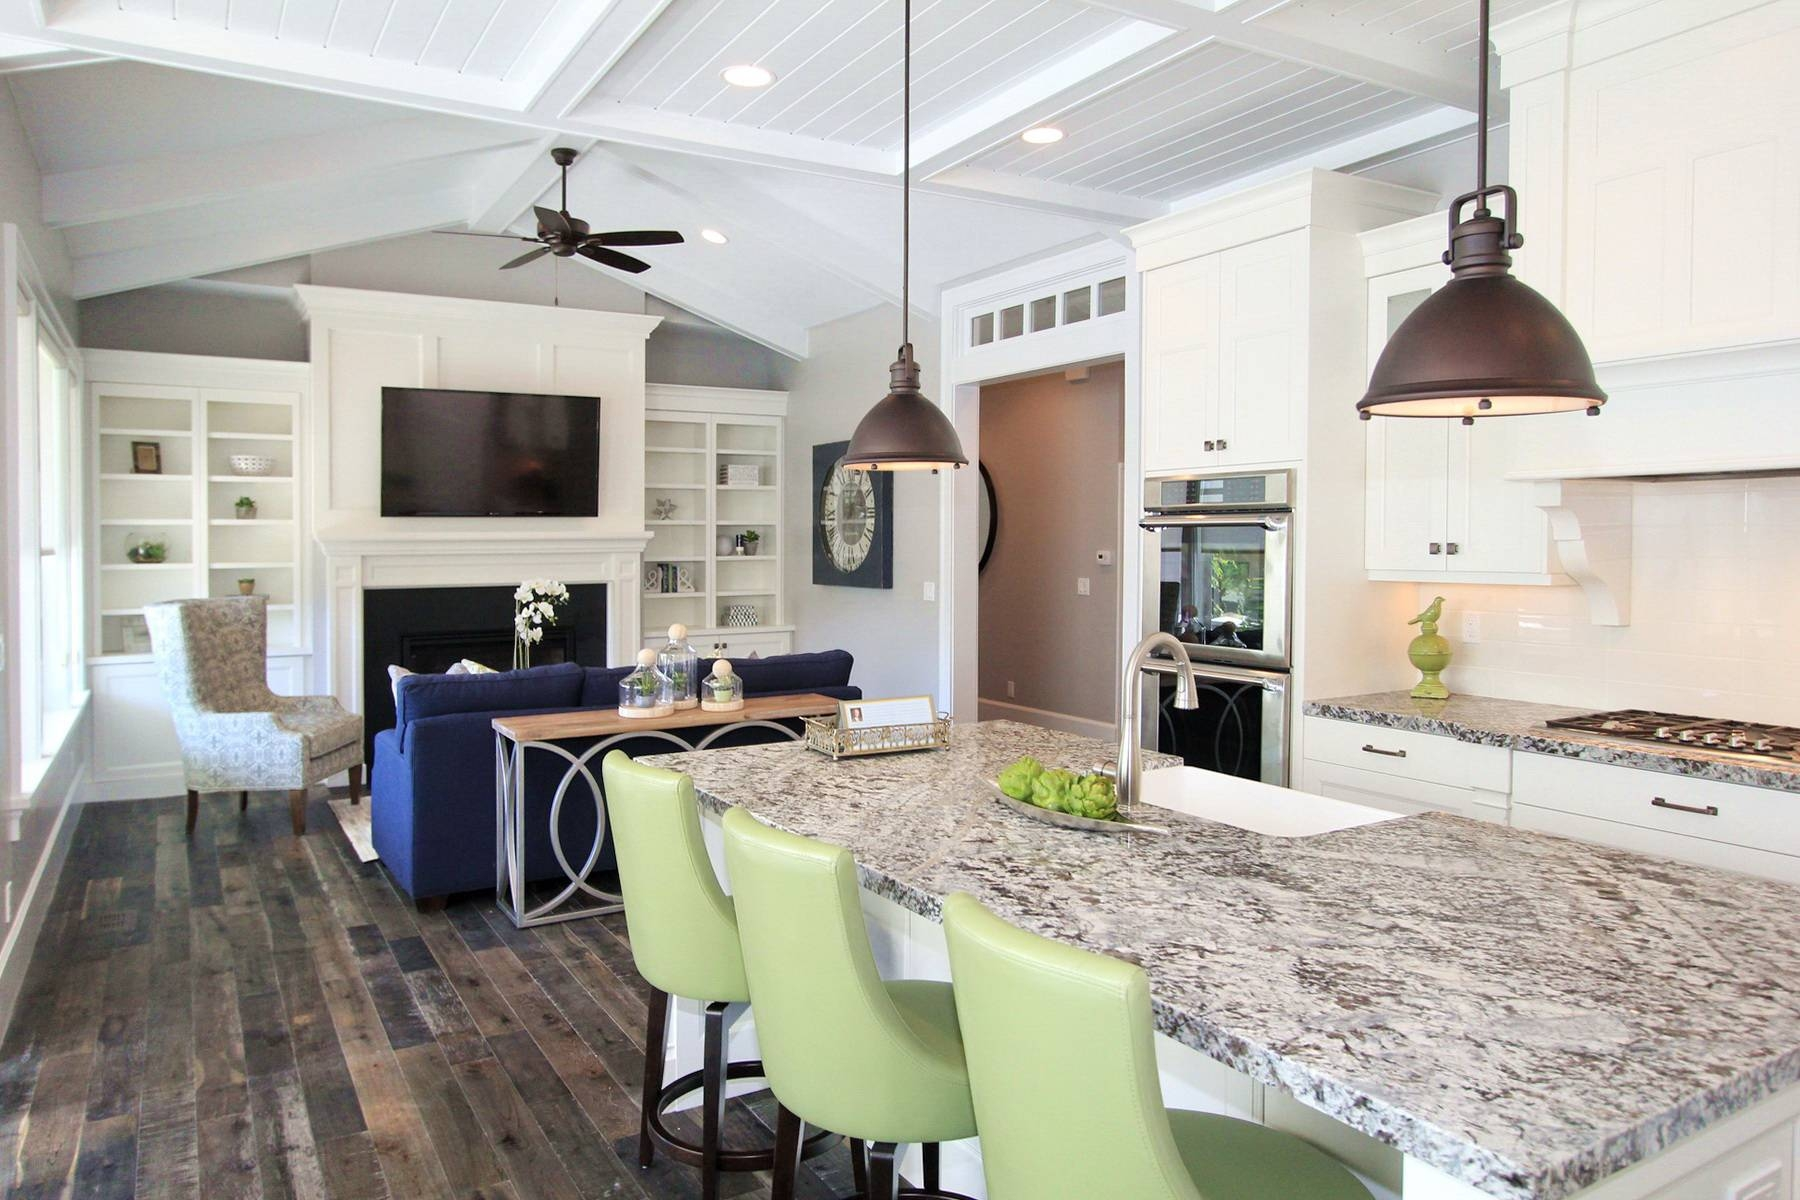 Lighting Fixtures : The Farmhouse Style Lighting Fixtures – Ana With Farmhouse Style Pendant Lighting (View 4 of 15)